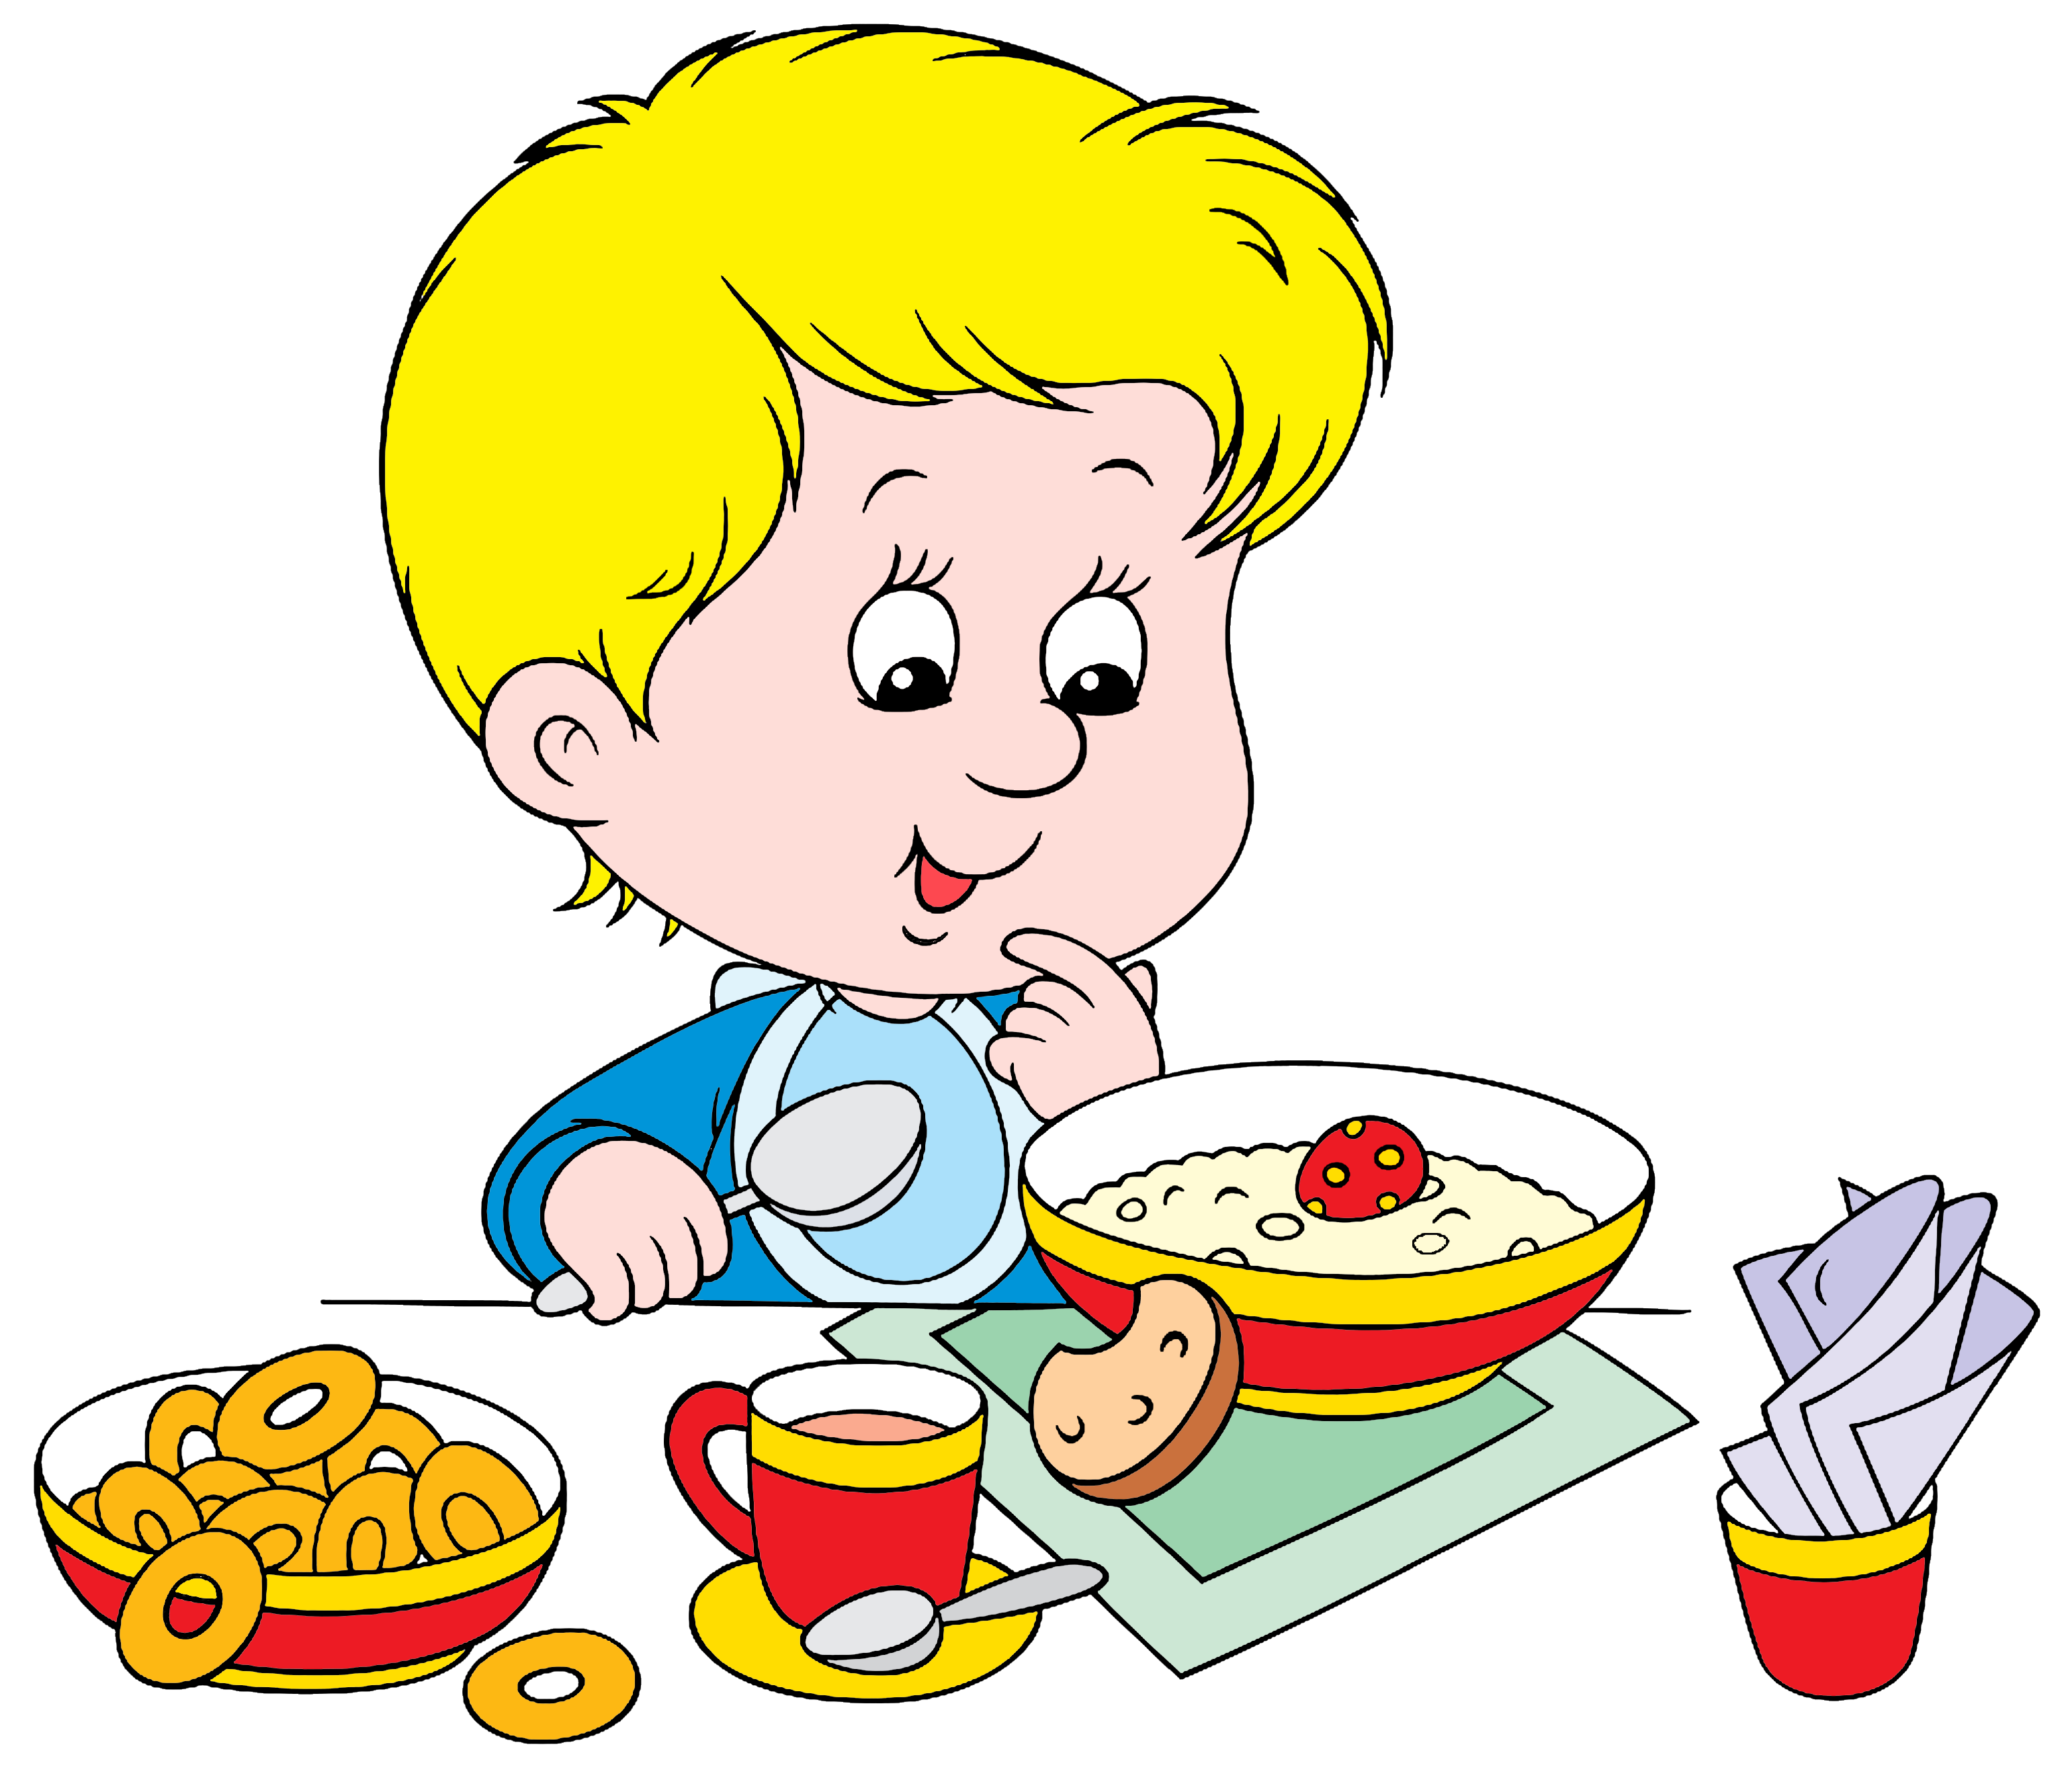 School breakfast clipart svg library download boy eating breakfast clipart - Google Търсене | Klipart | Pinterest svg library download